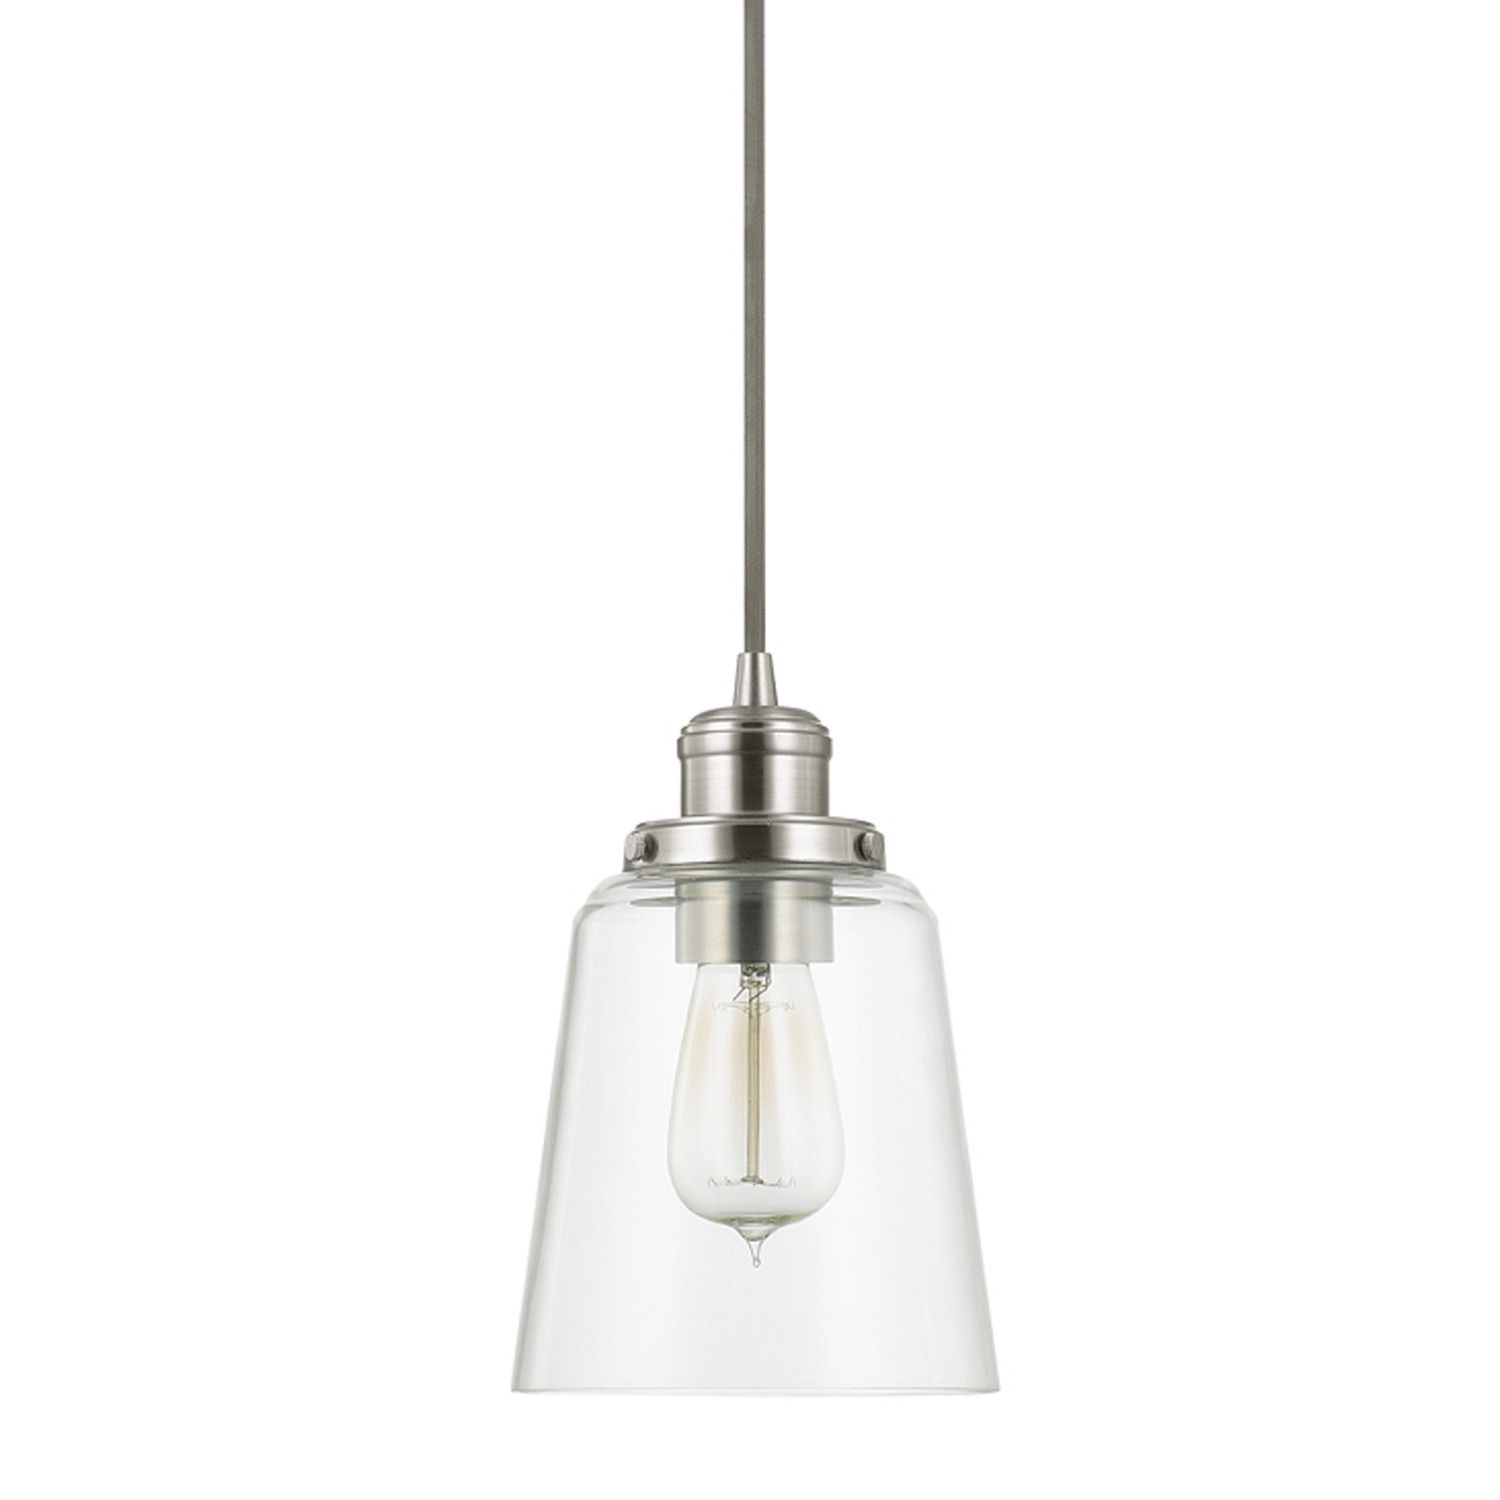 Small Pendant Lights For Kitchen: Capital Lighting 3718BN-135 Brushed Nickel Mini Pendant